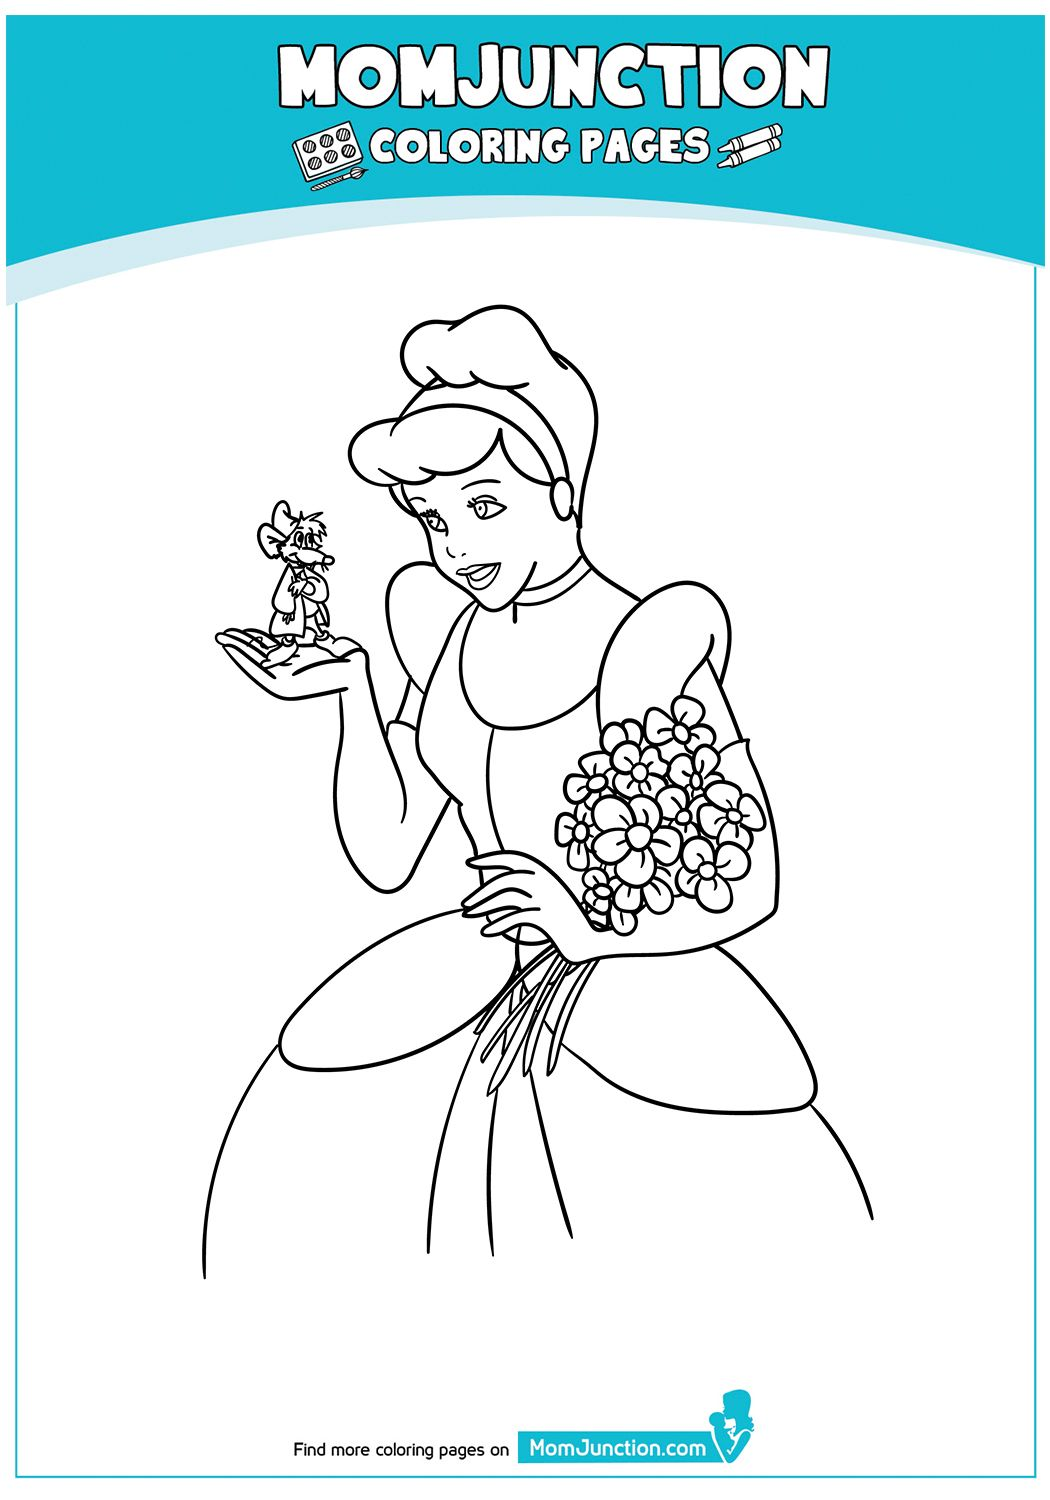 Print Coloring Image Momjunction Ariel Coloring Pages Free Disney Coloring Pages Disney Princess Coloring Pages